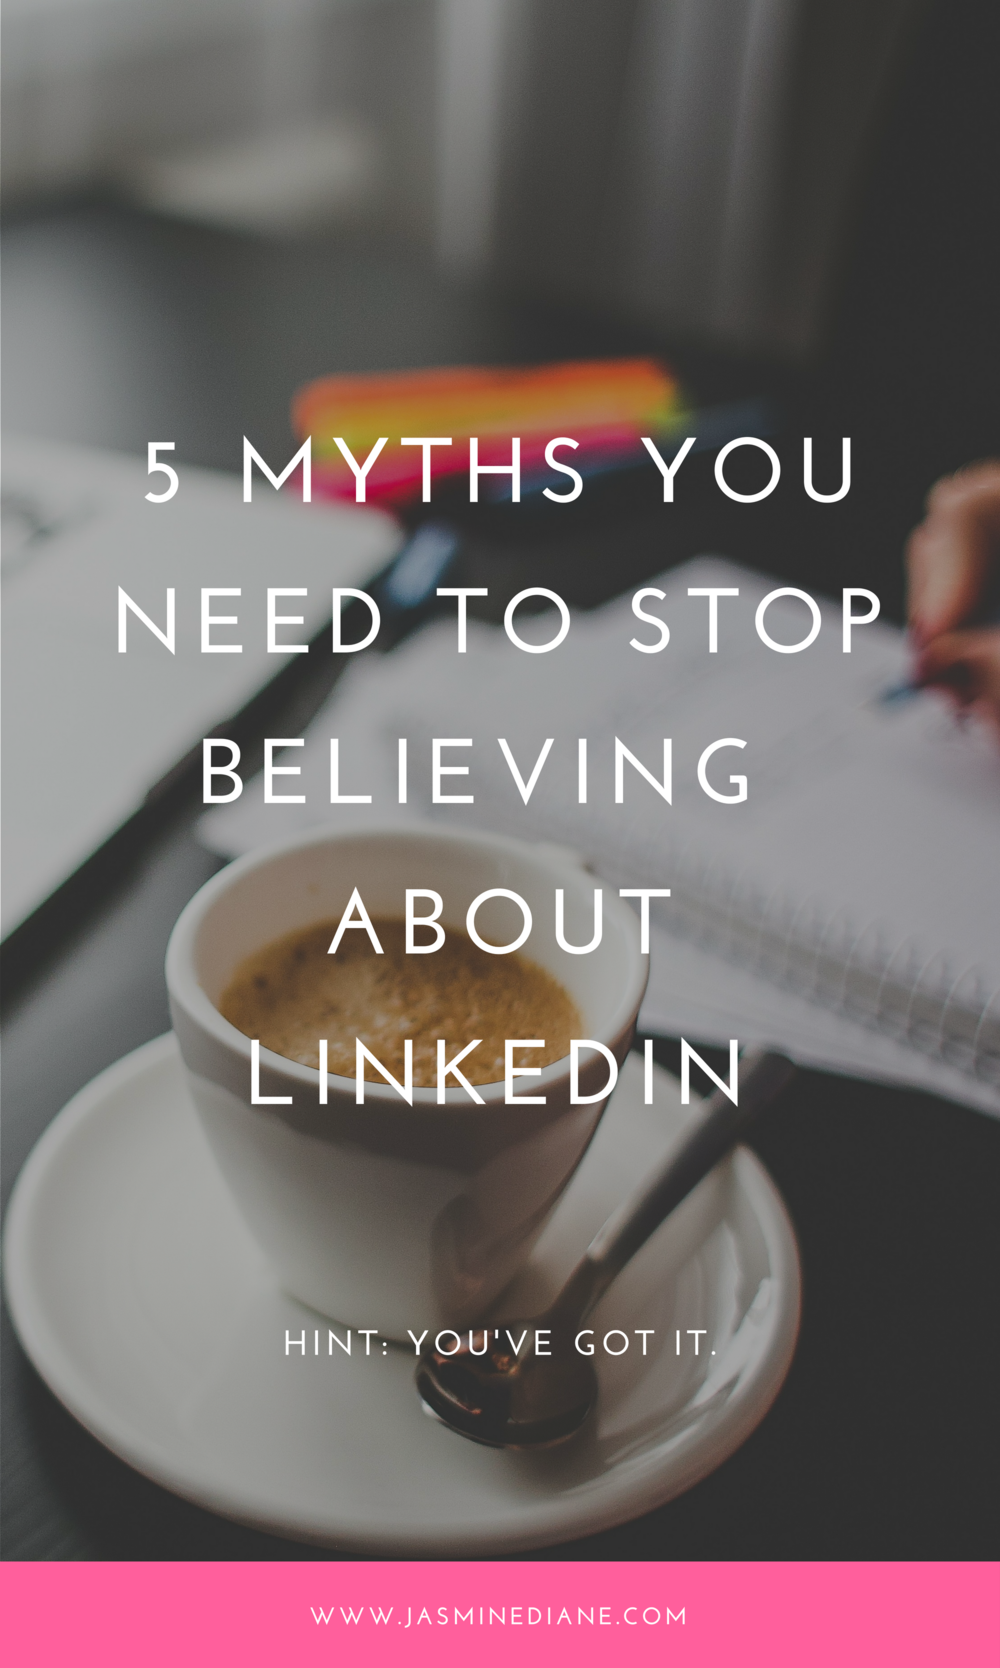 5 Myths You Need to Stop Believing About LinkedIn